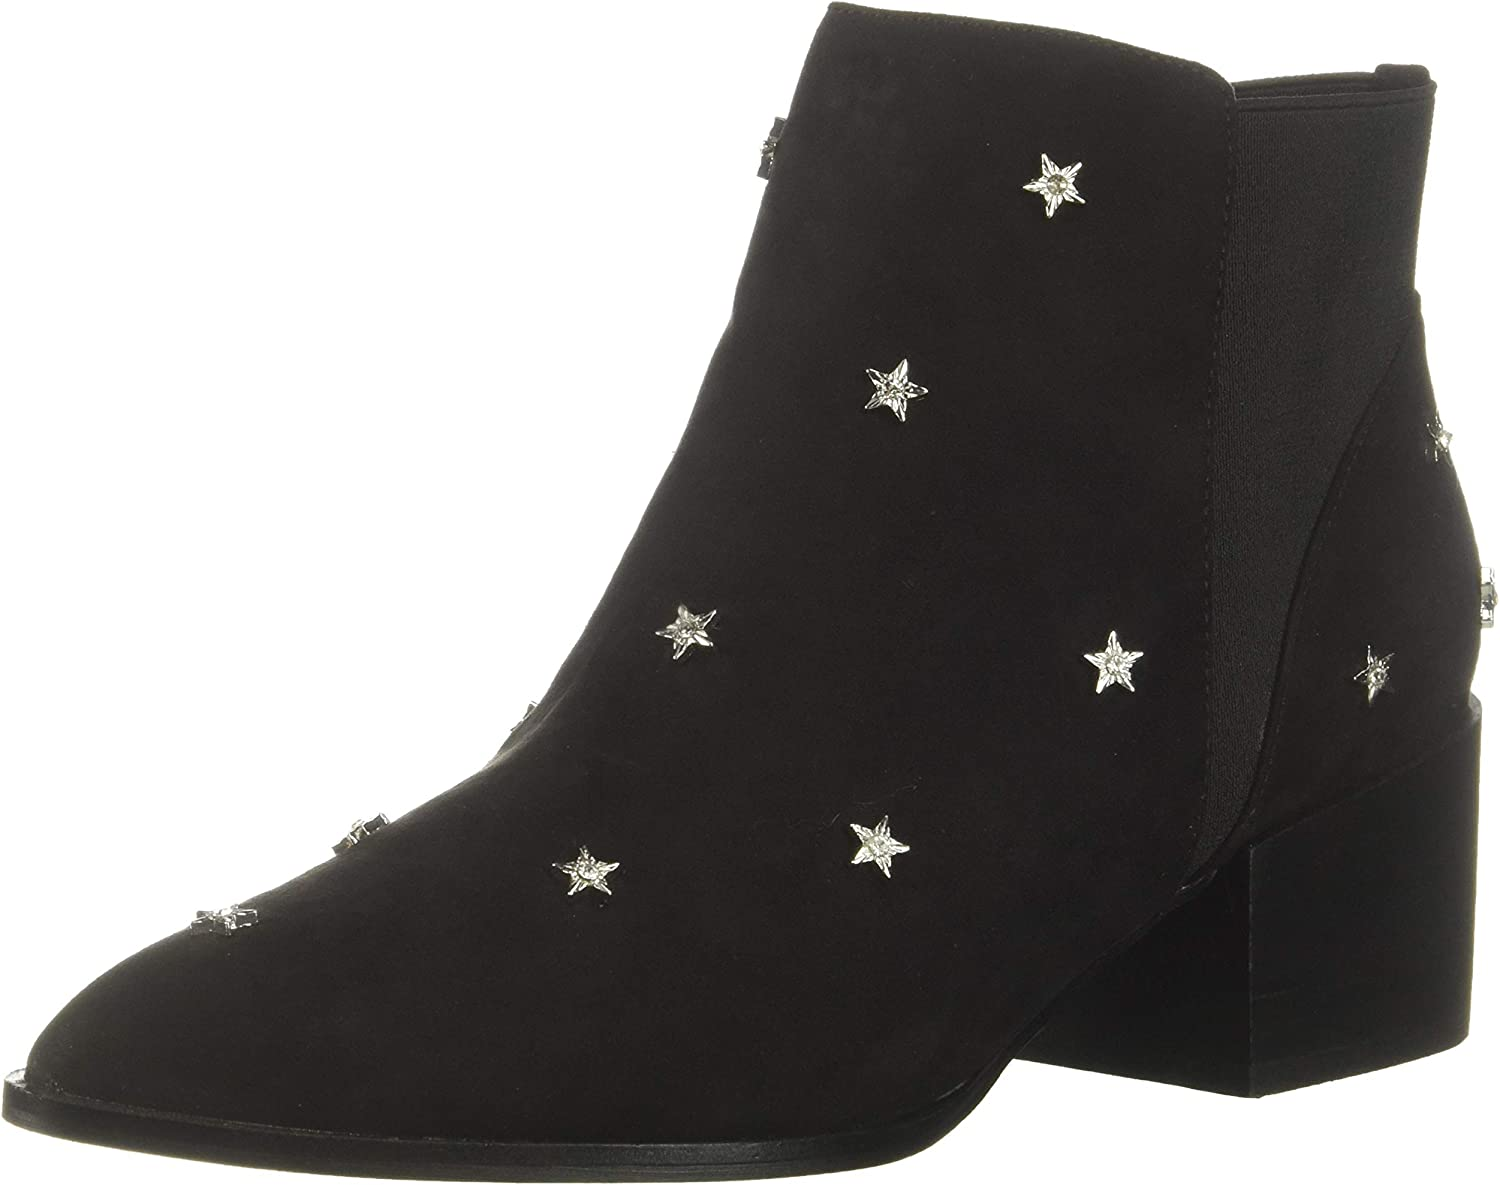 Chinese 55% OFF Laundry Women's Farren Max 87% OFF Ankle Boot